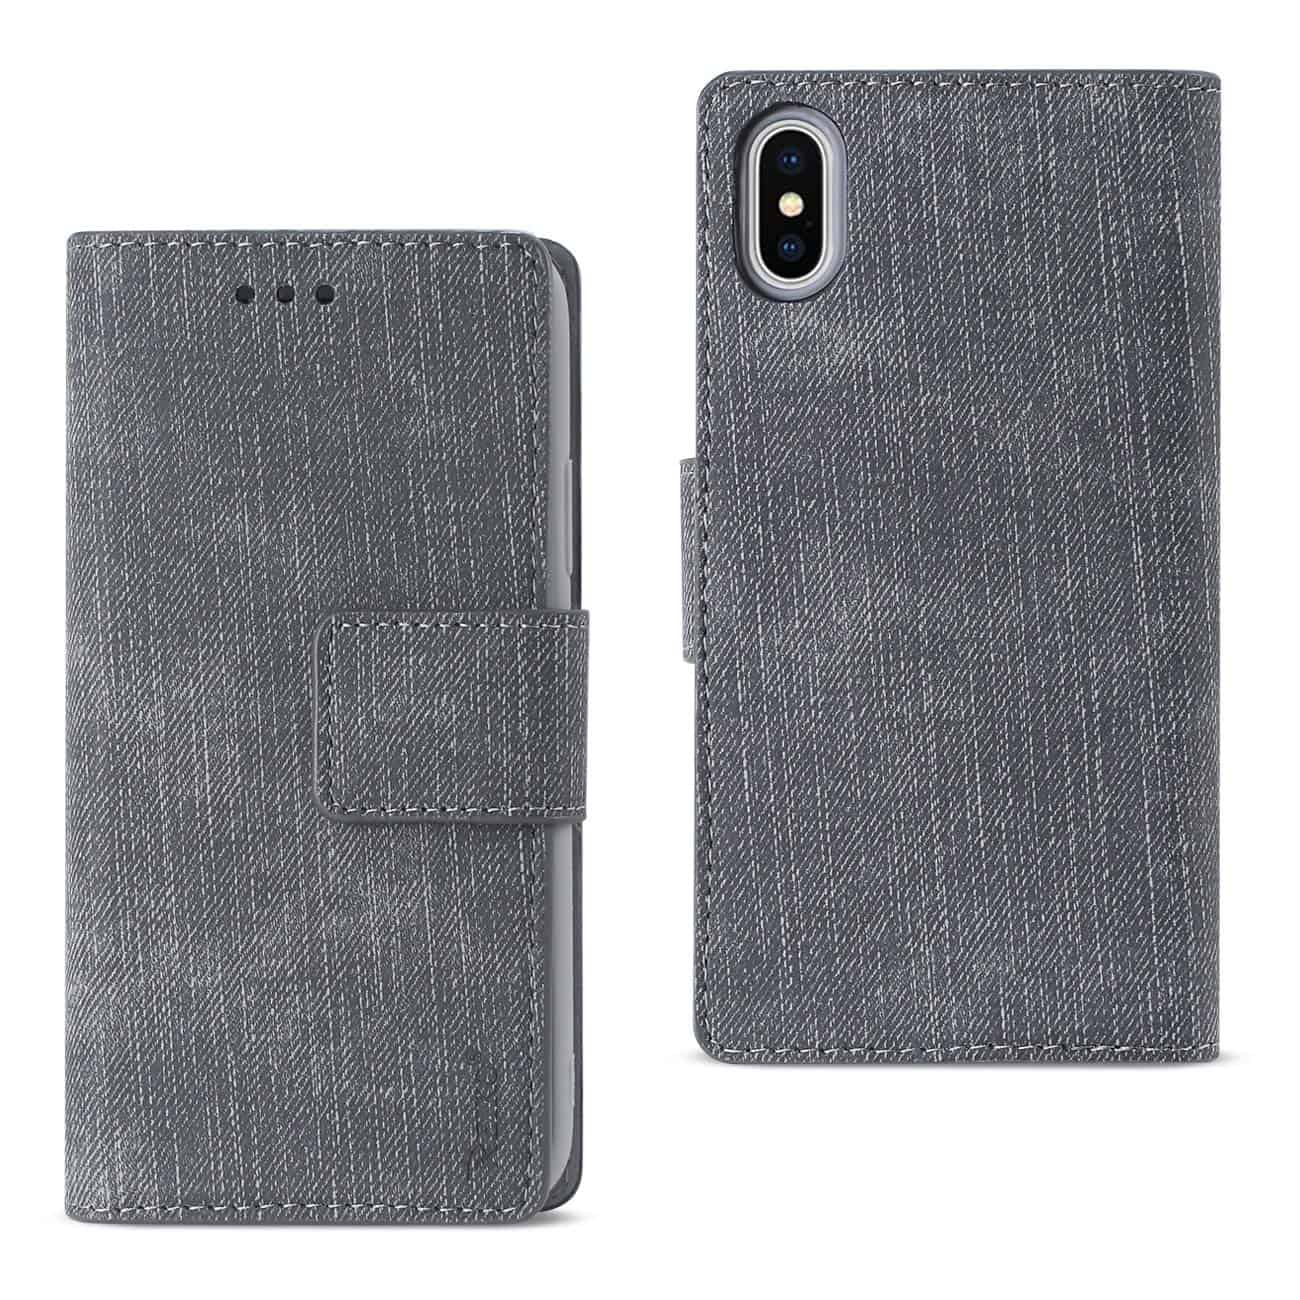 IPHONE X DENIM WALLET CASE WITH GUMMY INNER SHELL AND KICKSTAND FUNCTION IN GRAY